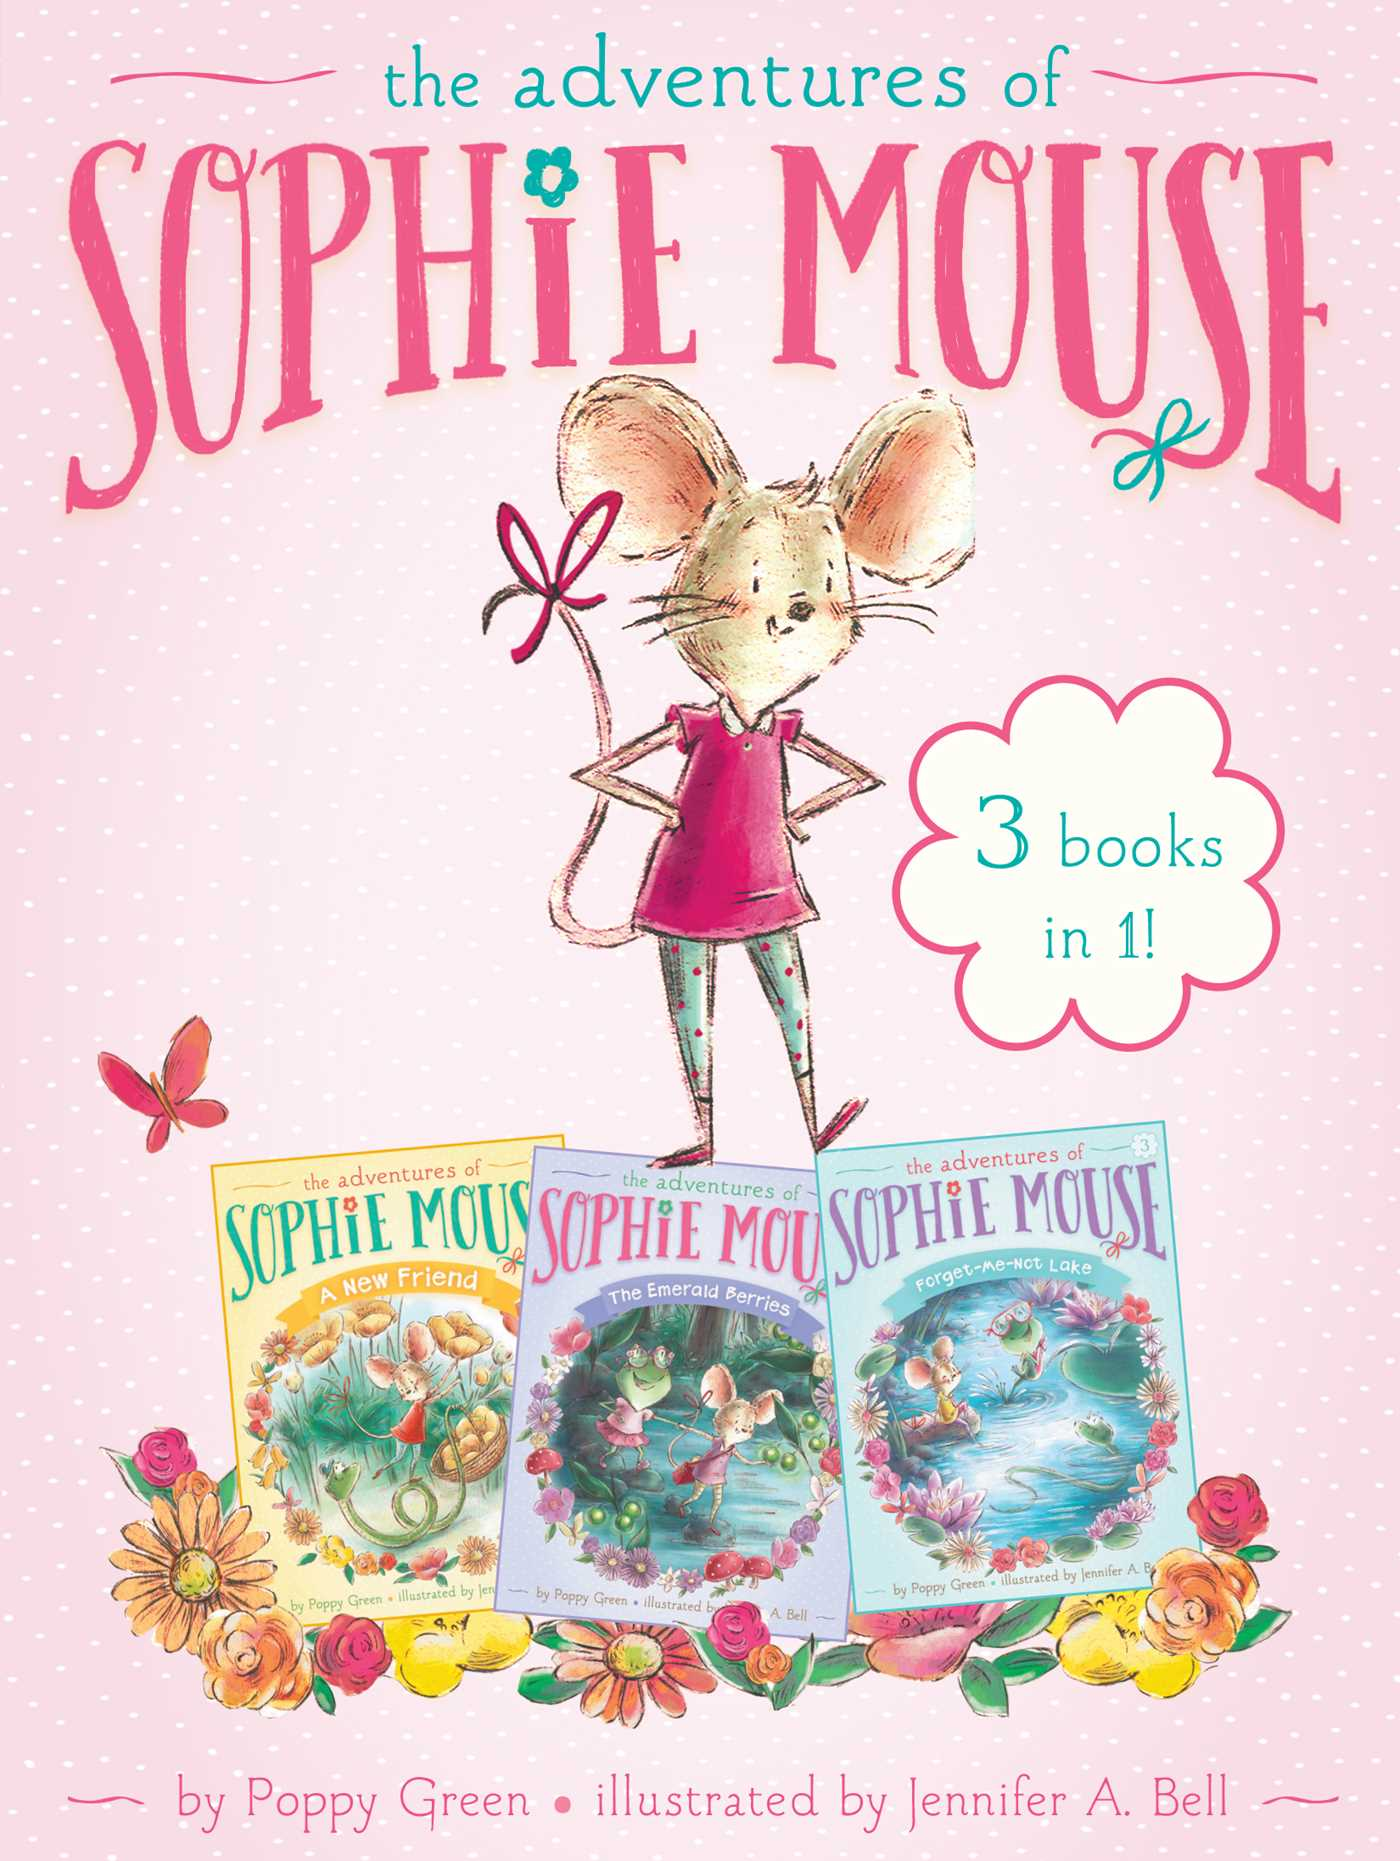 The adventures of sophie mouse 3 books in 1 9781481485241 hr